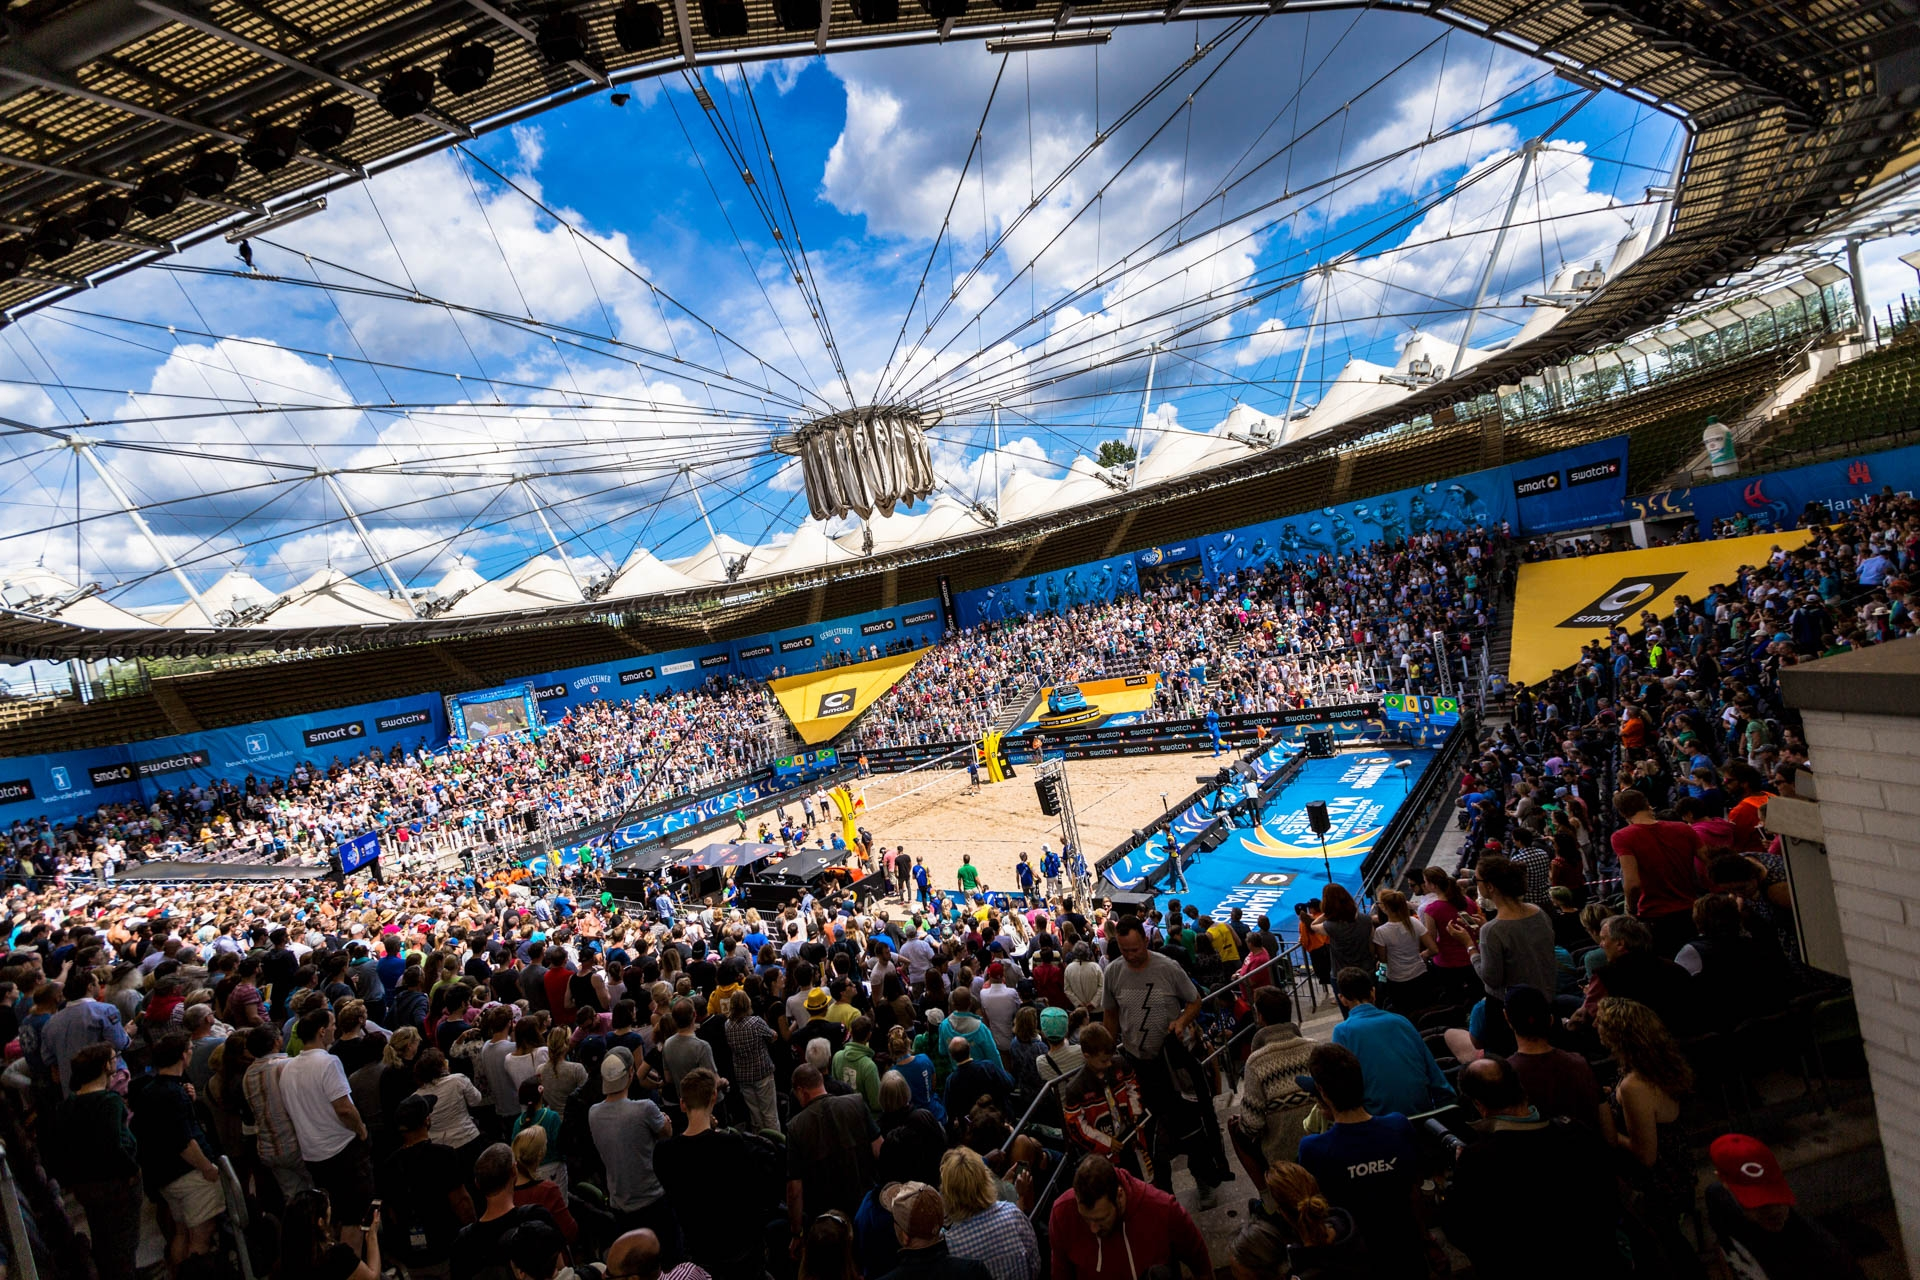 The crowds crammed into the Rothenbaum this week. Photocredit: Daniel Grund.